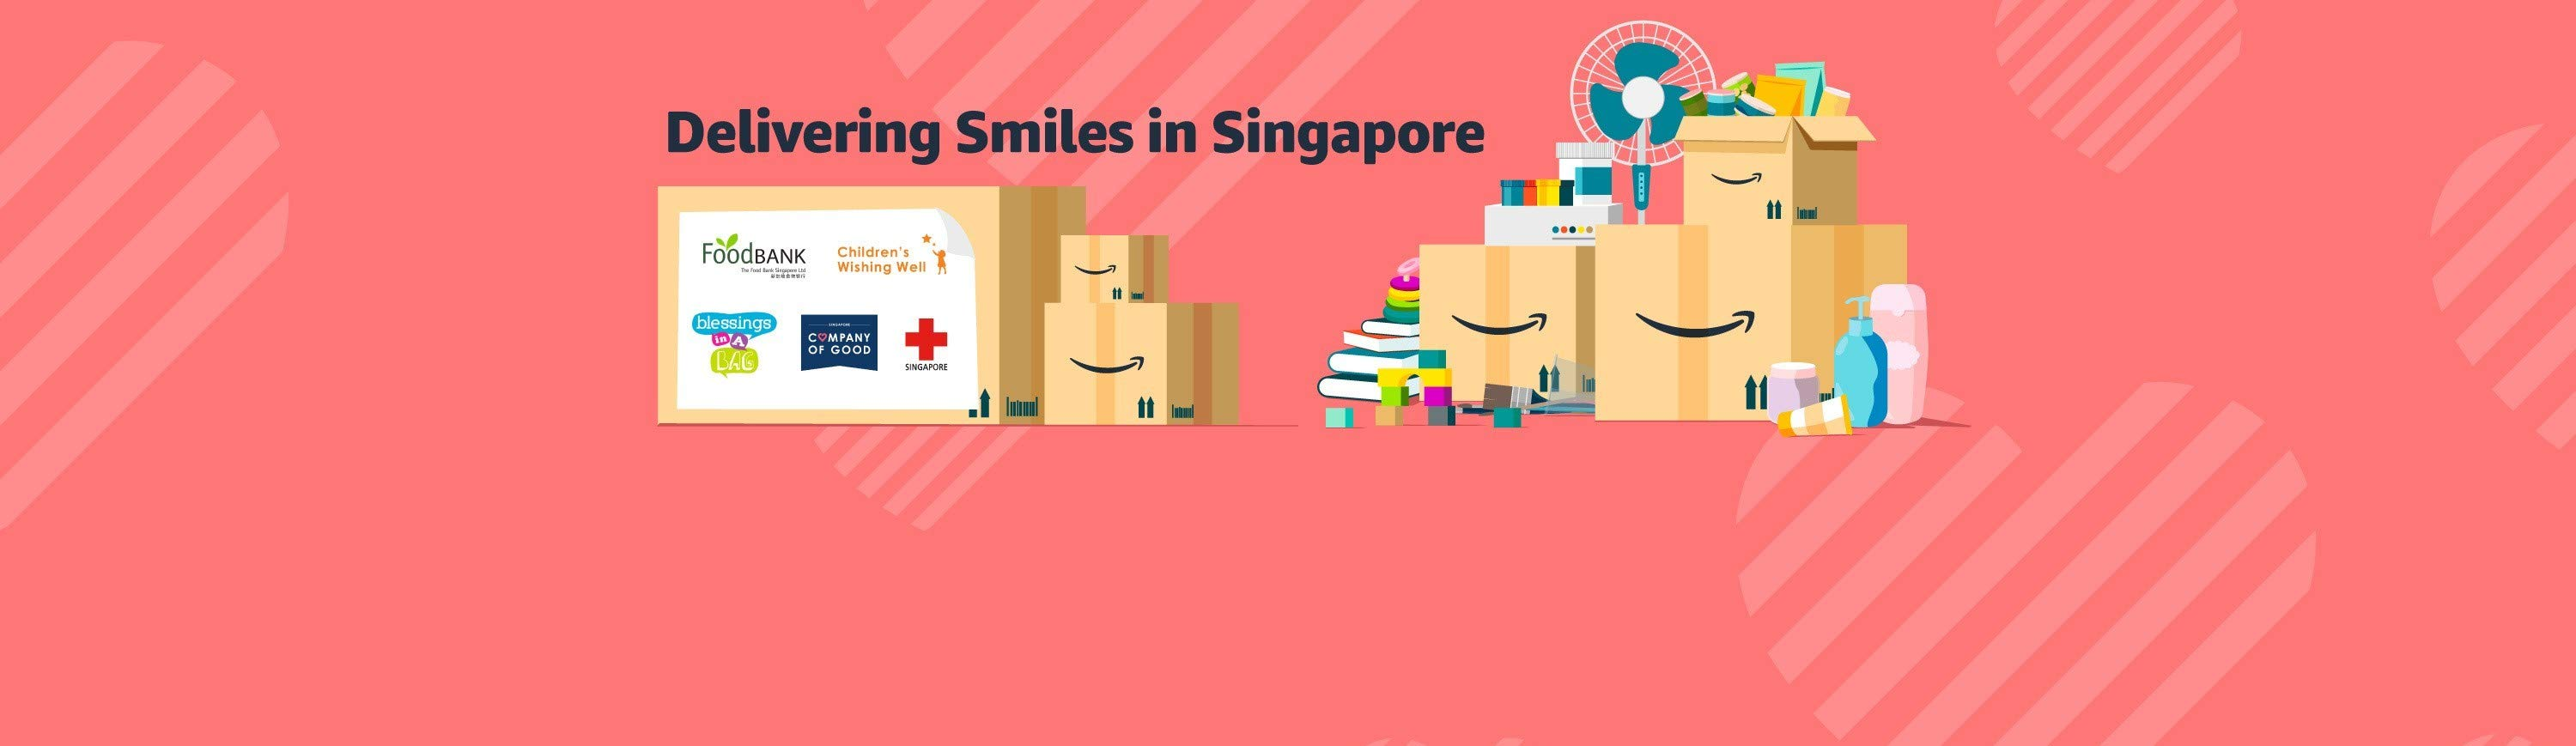 Delivering Smiles in Singapore